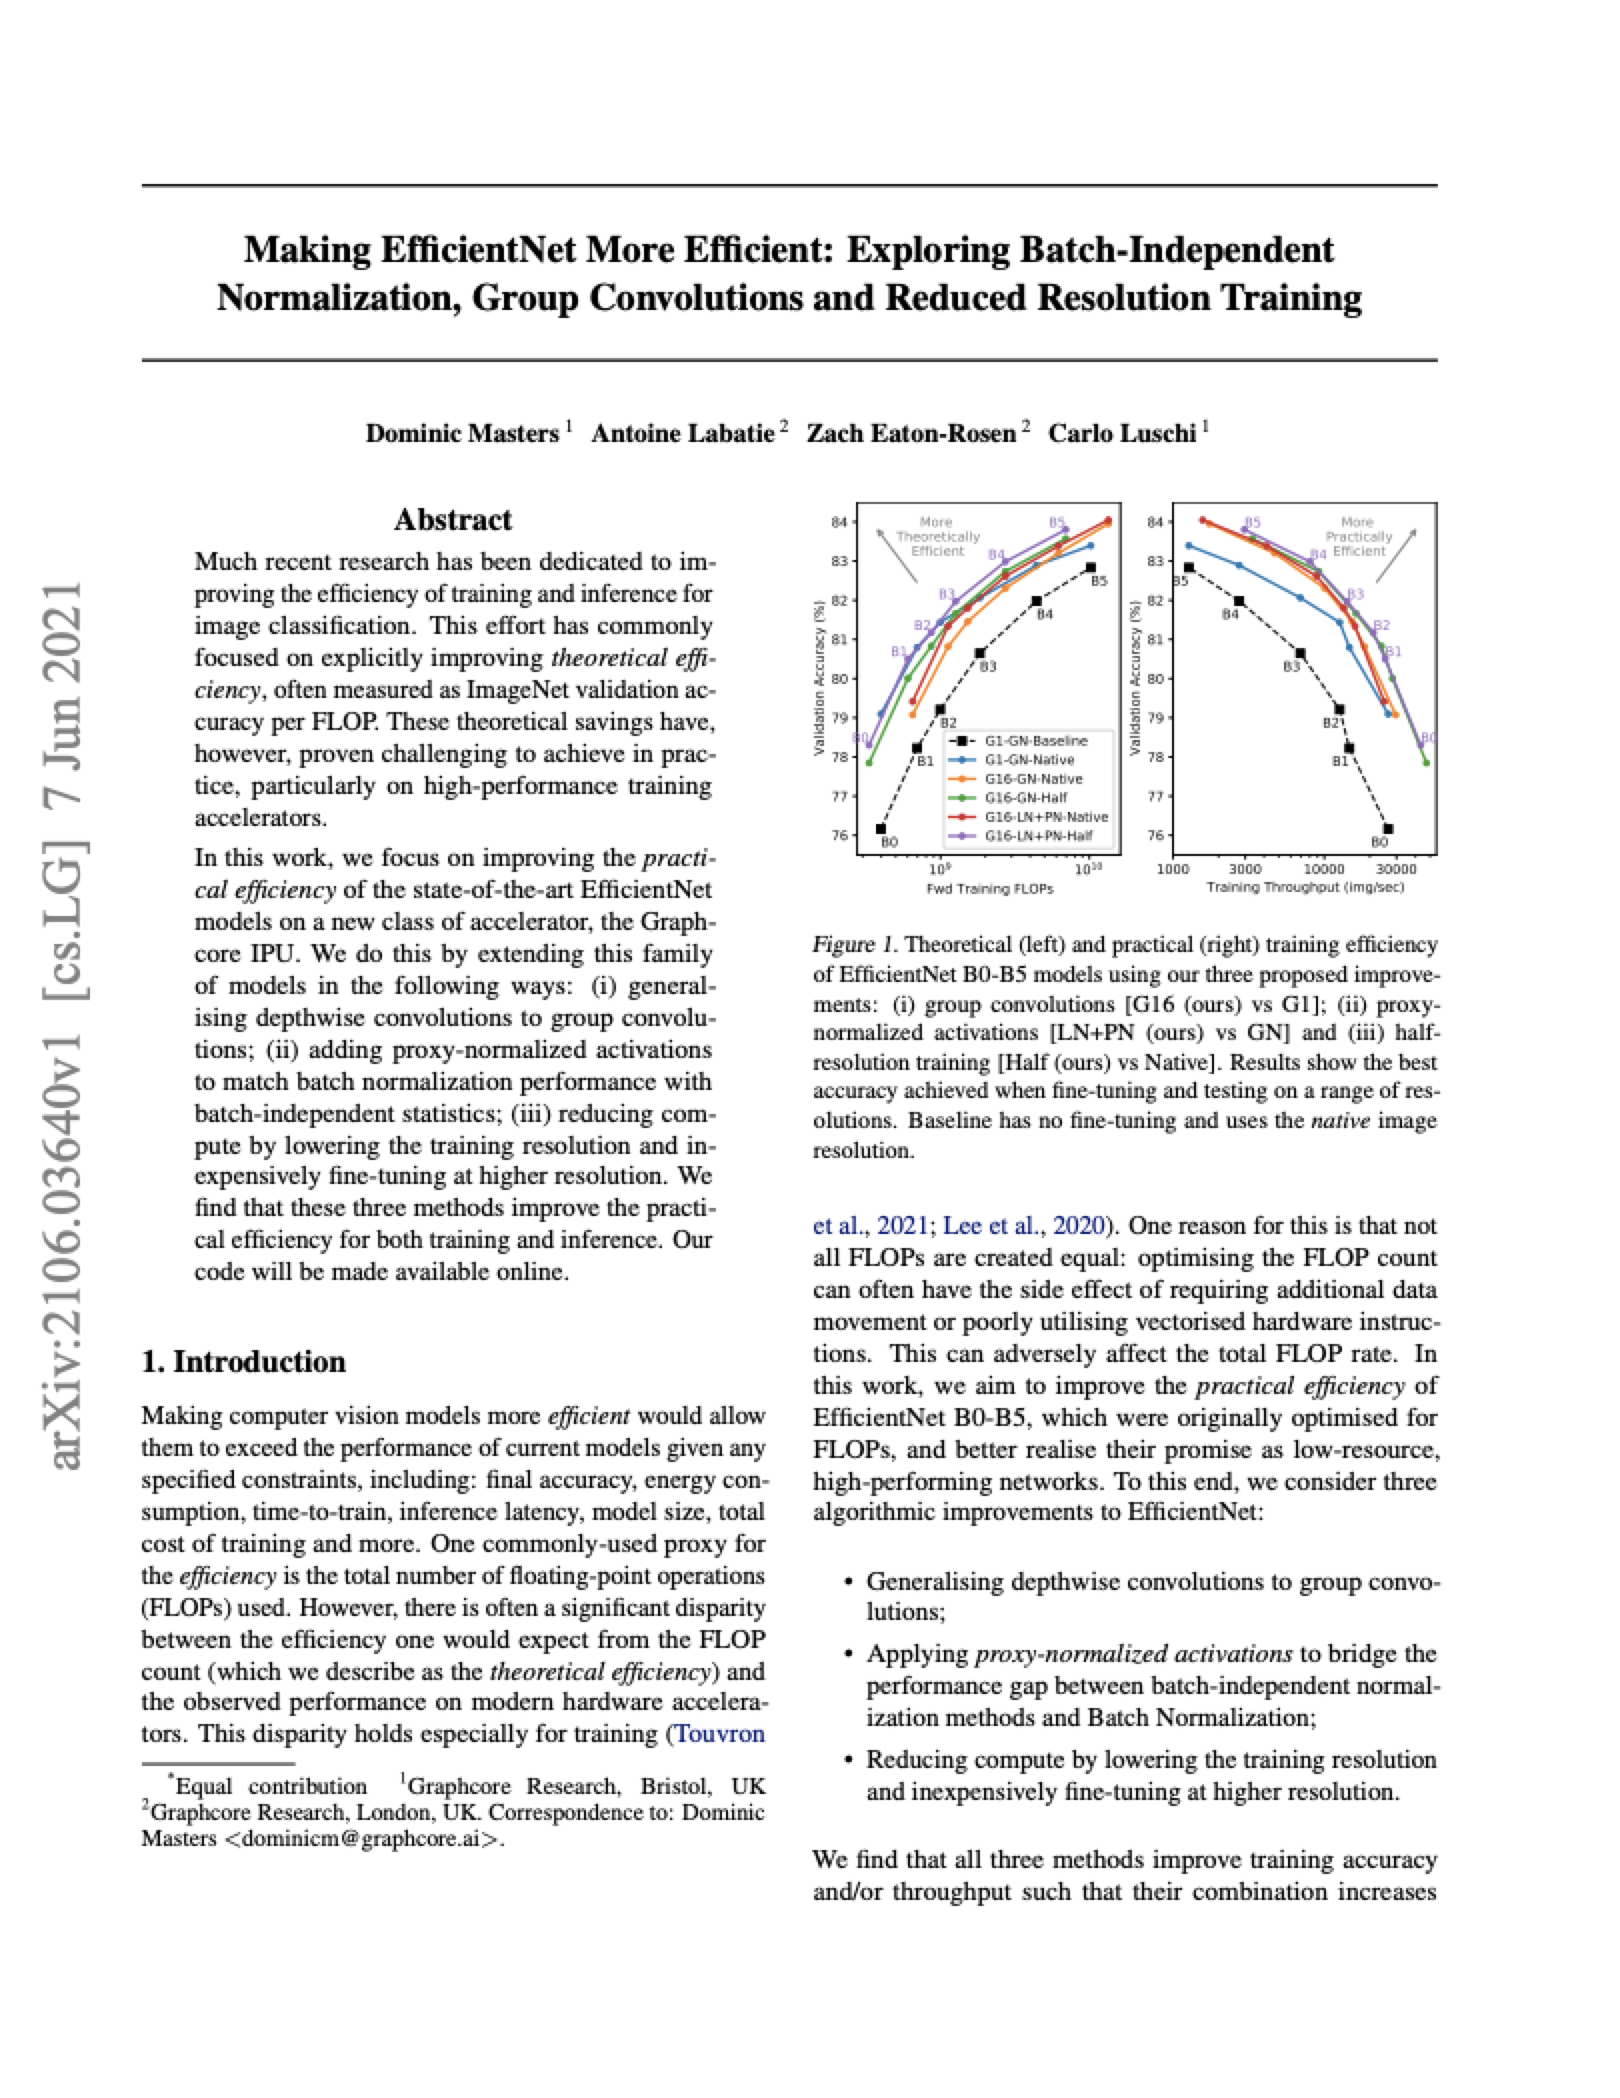 Graphcore Research: Making EfficientNet More Efficient: Exploring Batch-Independent Normalization, Group Convolutions and Reduced Resolution Training